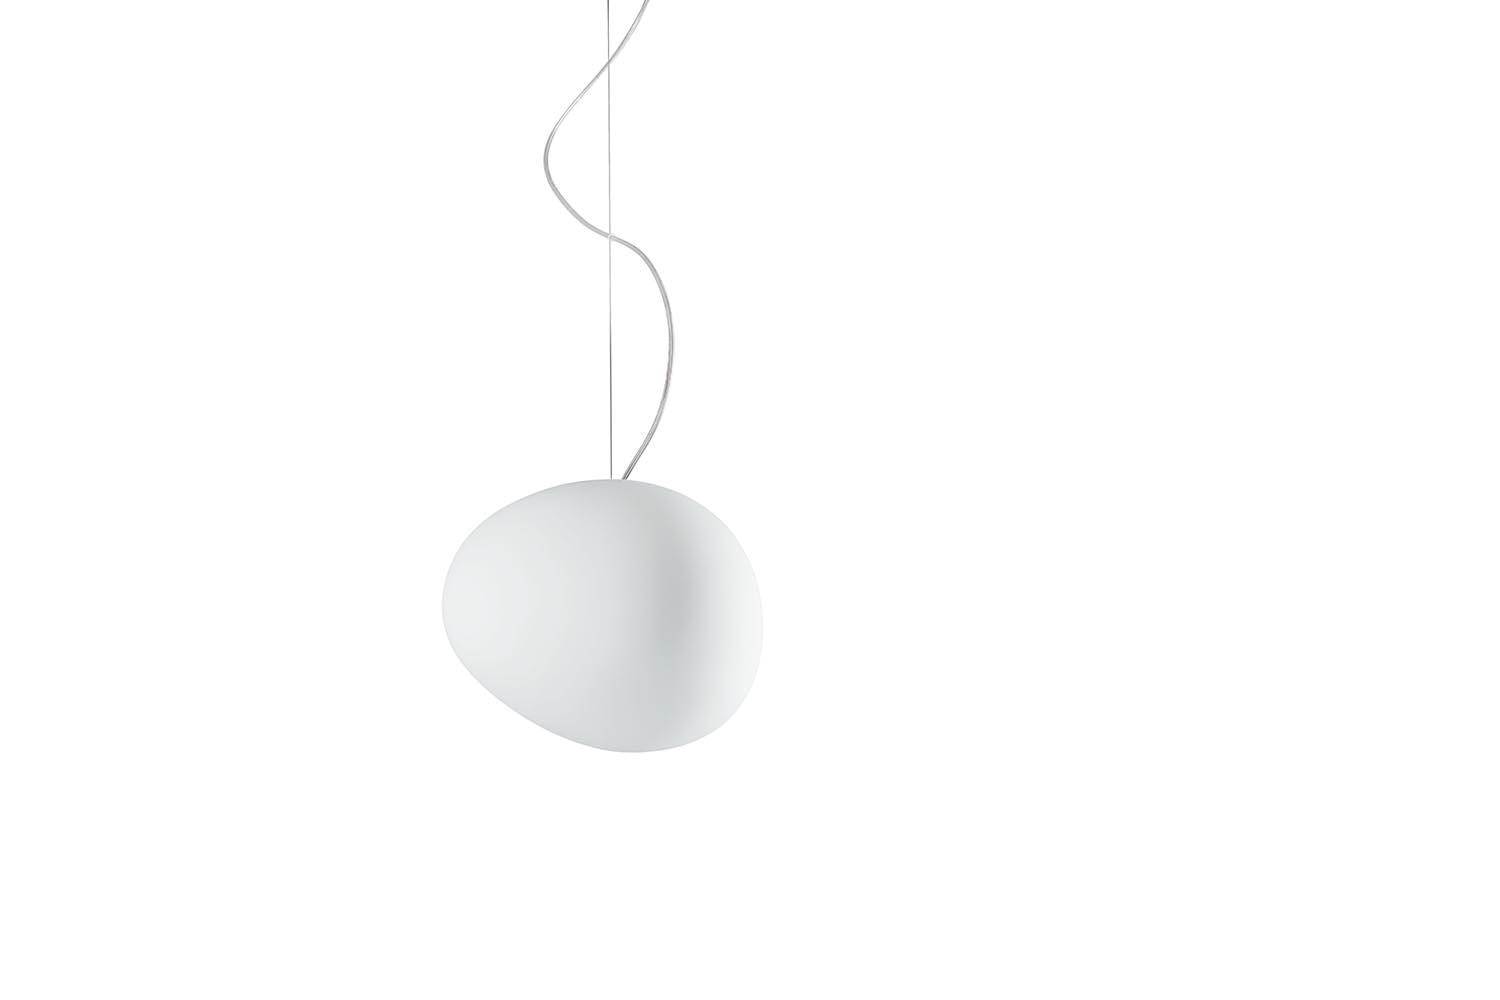 Gregg Media Suspension Lamp by Ludovica & Roberto Palomba for Foscarini